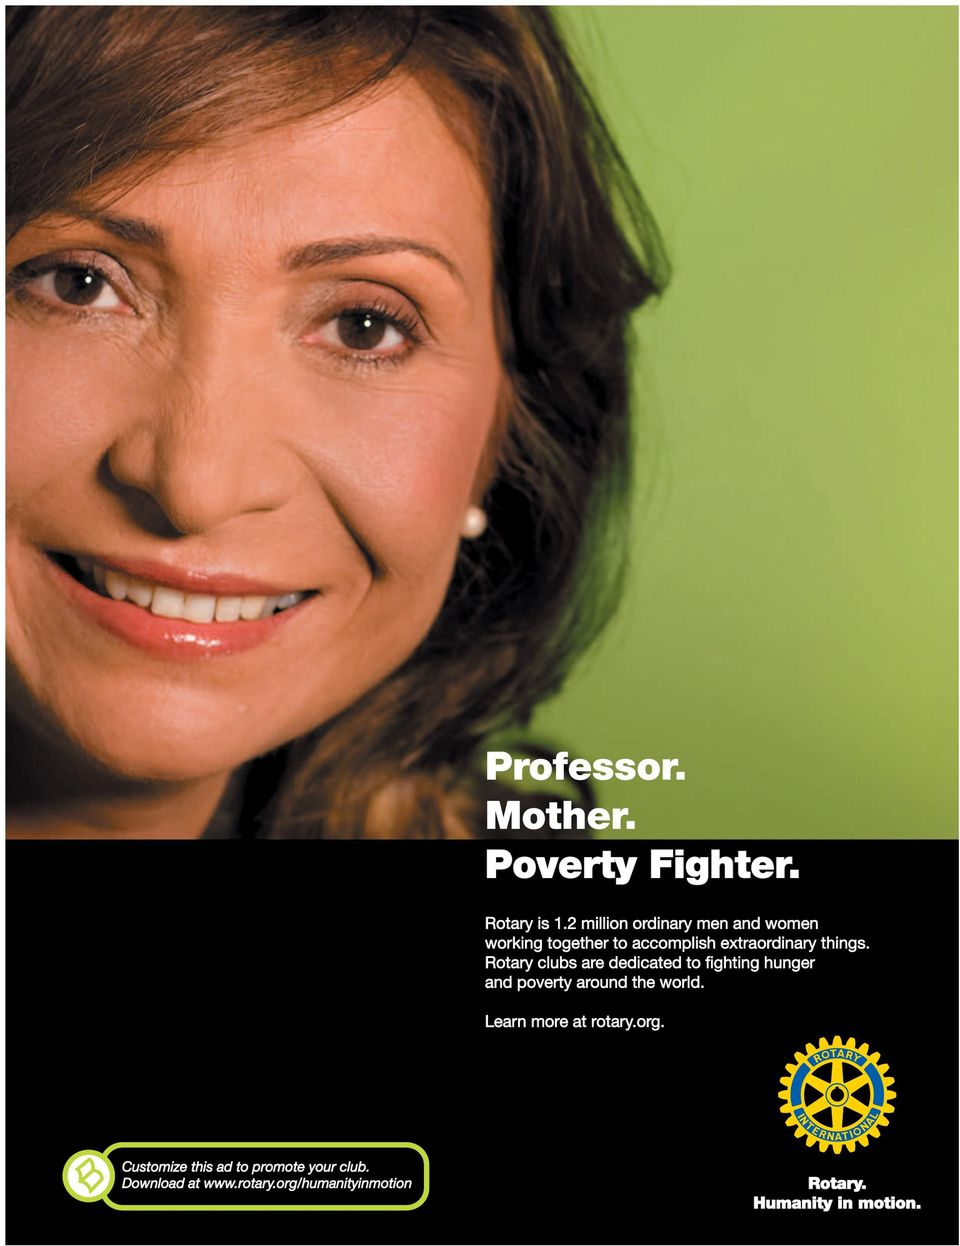 Rotary clubs are dedicated to fighting hunger and poverty around the world.